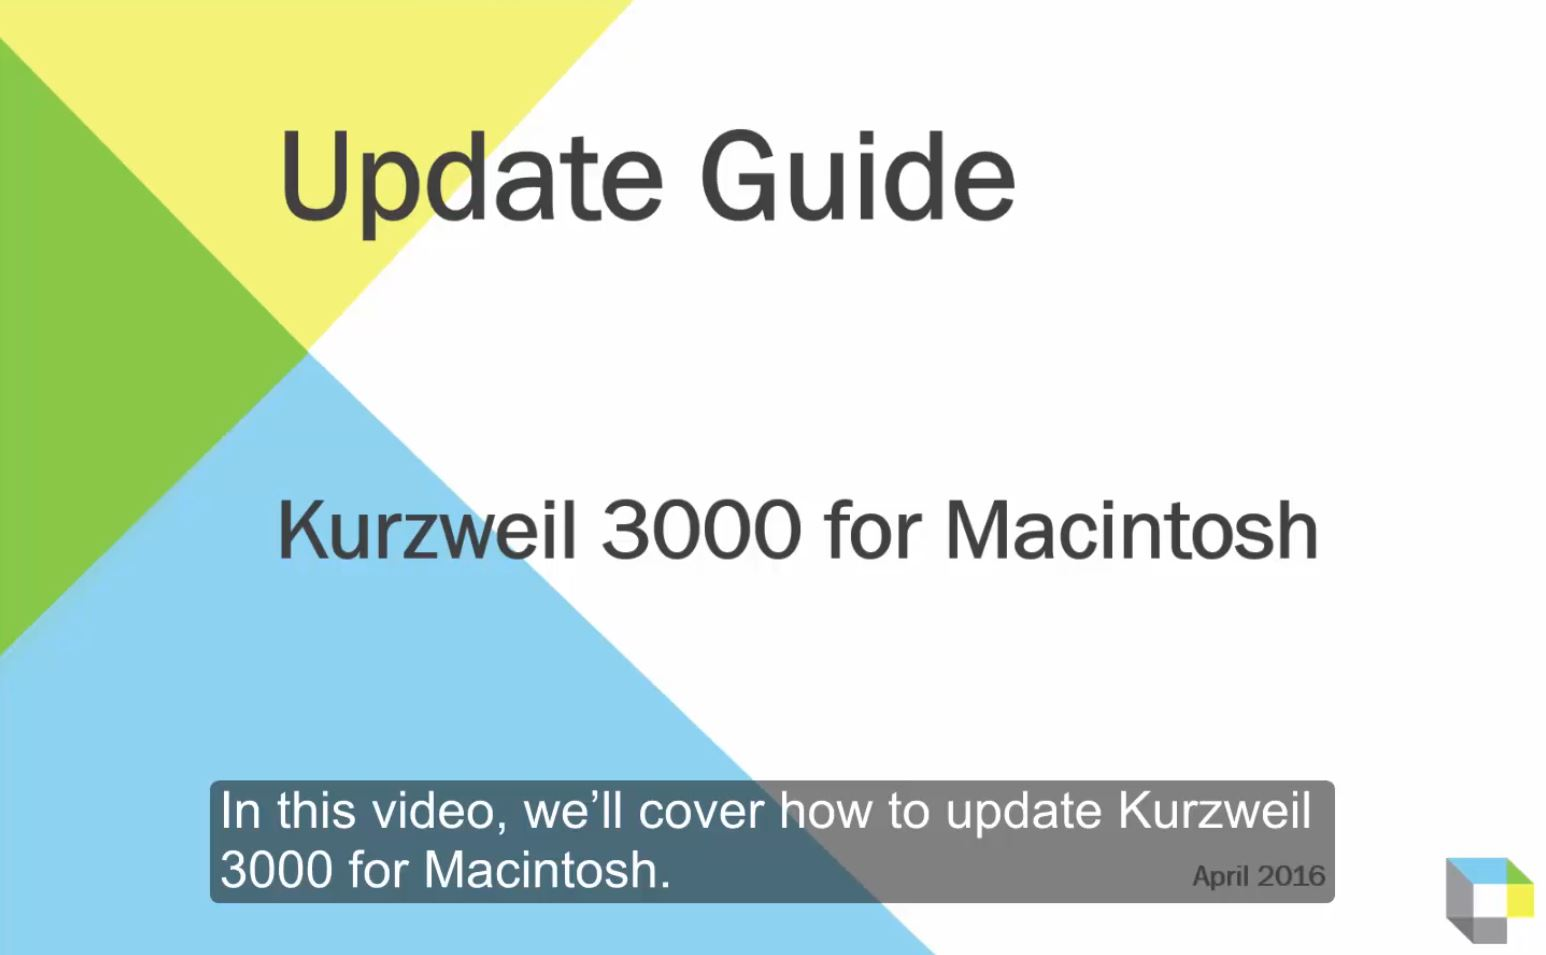 Updating Kurzweil 3000 for Macintosh